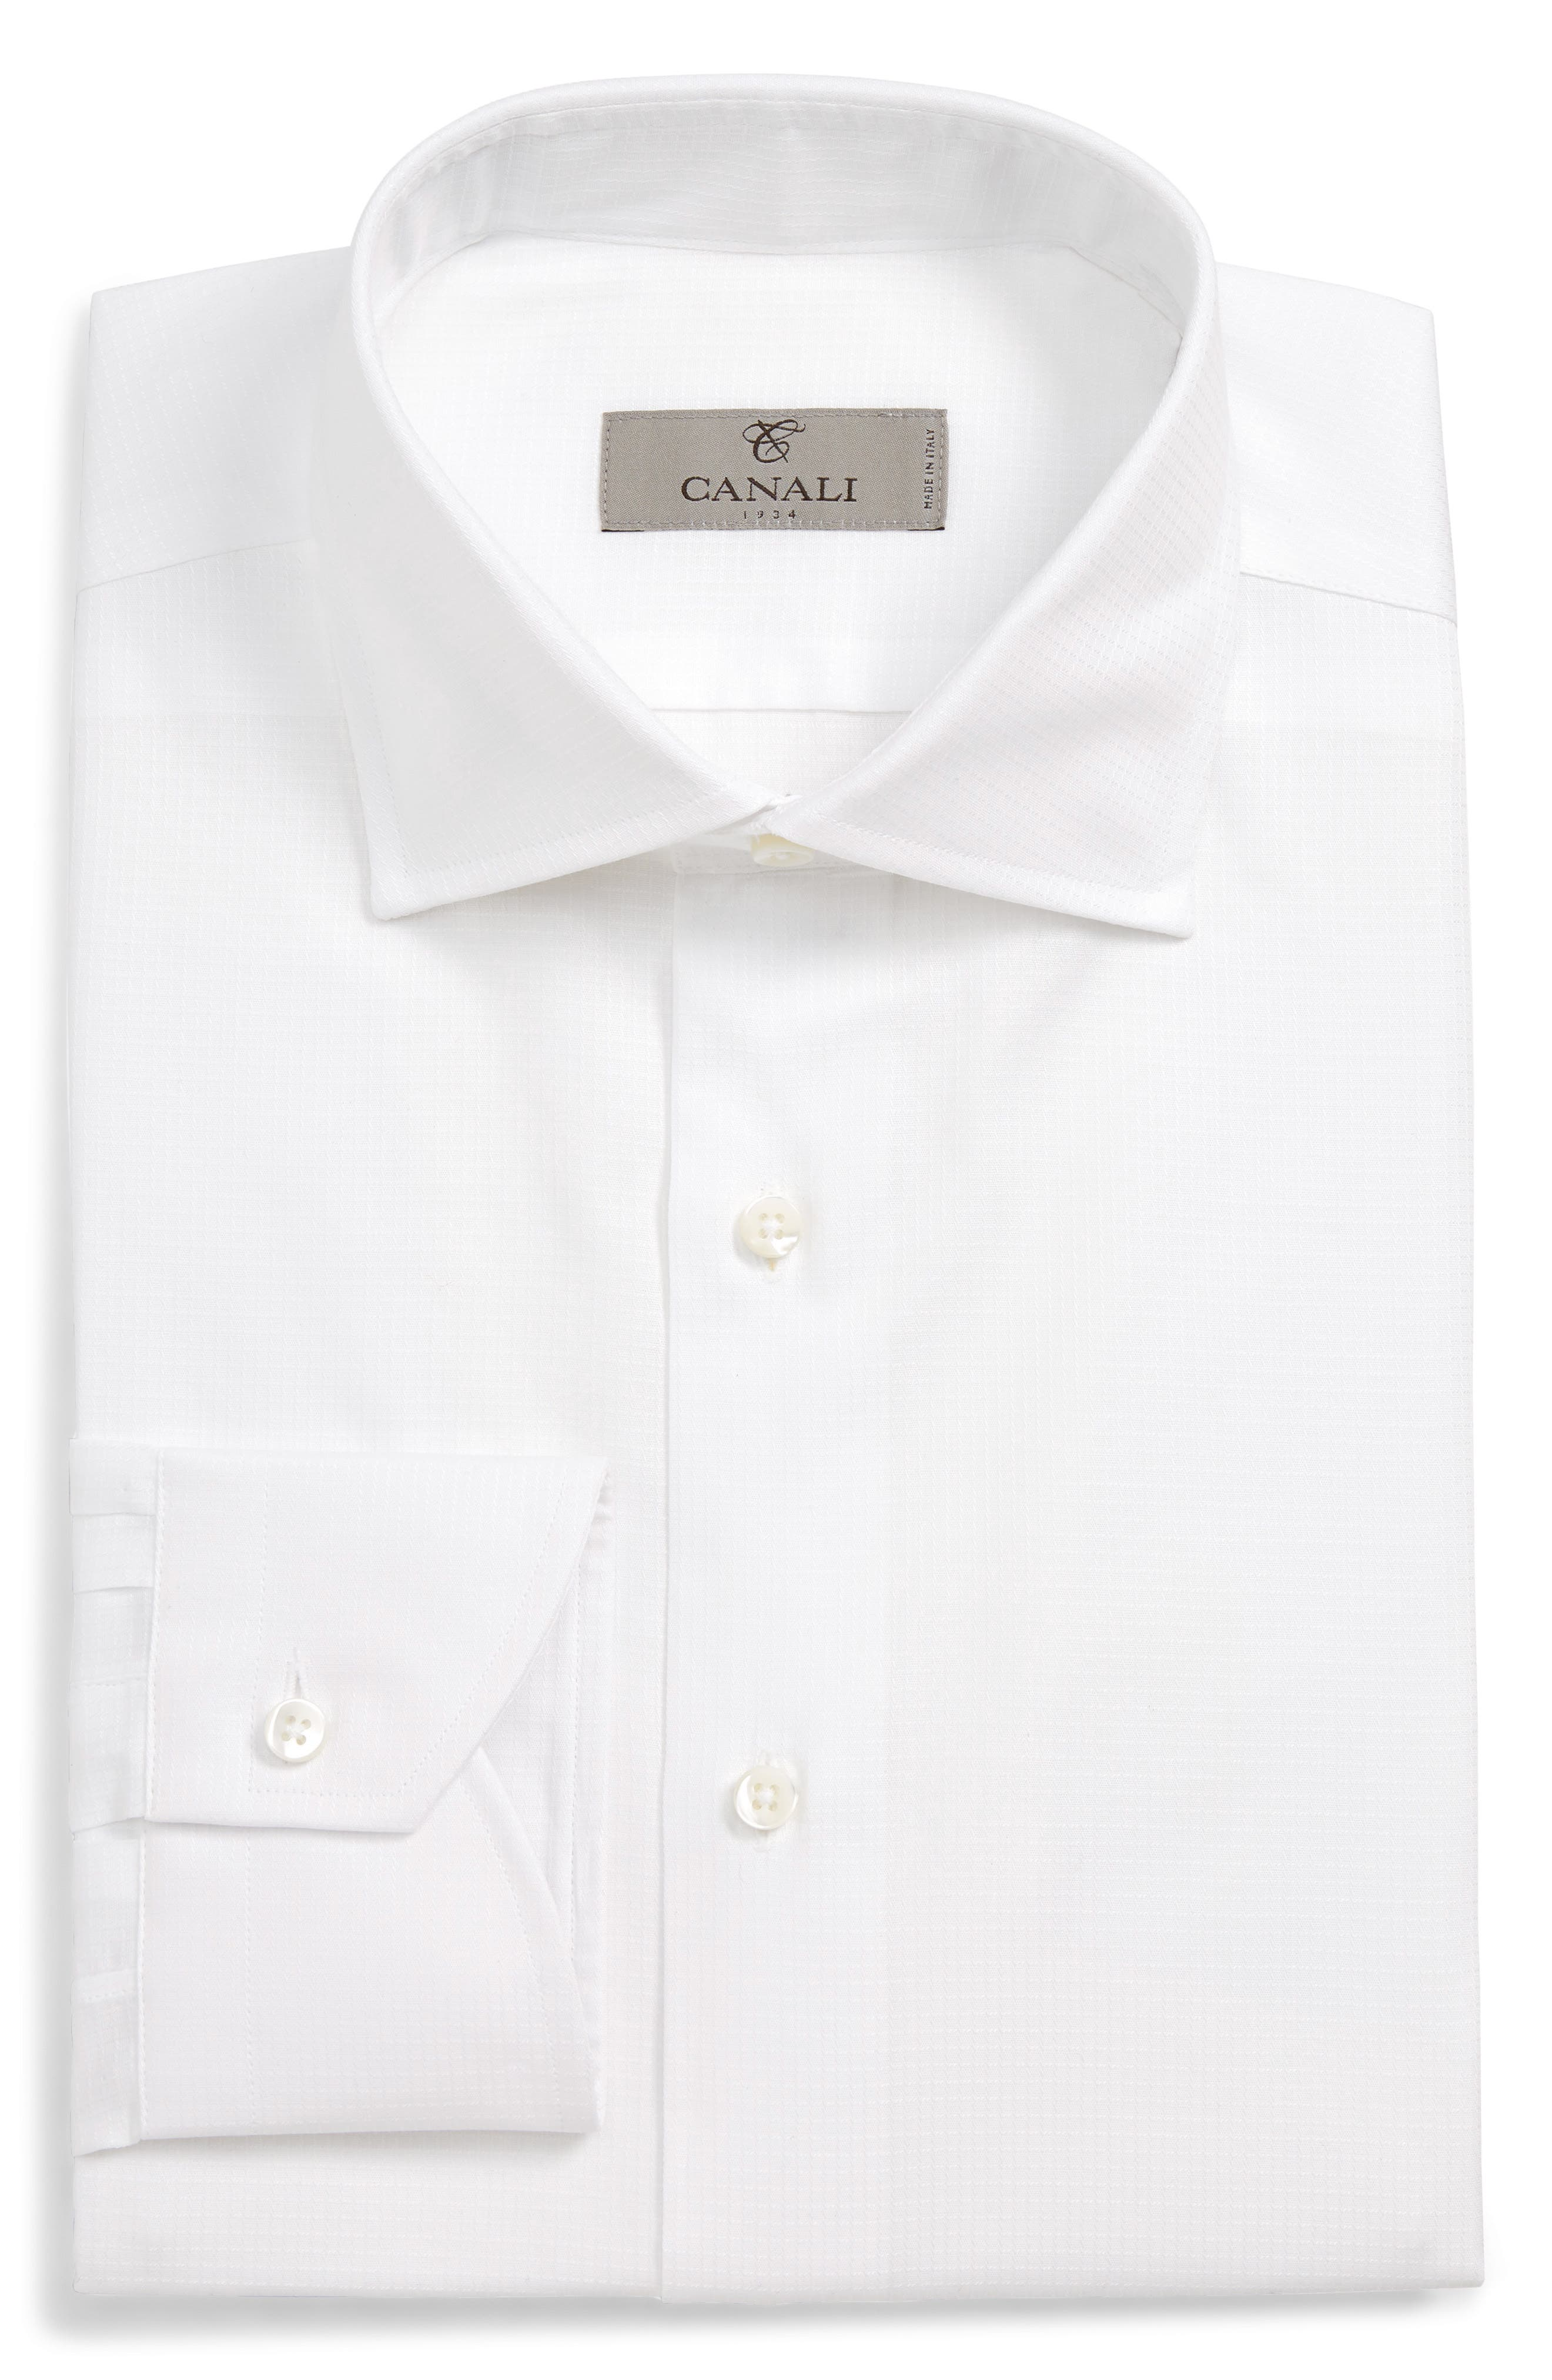 CANALI Regular Fit Solid Dress Shirt, Main, color, WHITE